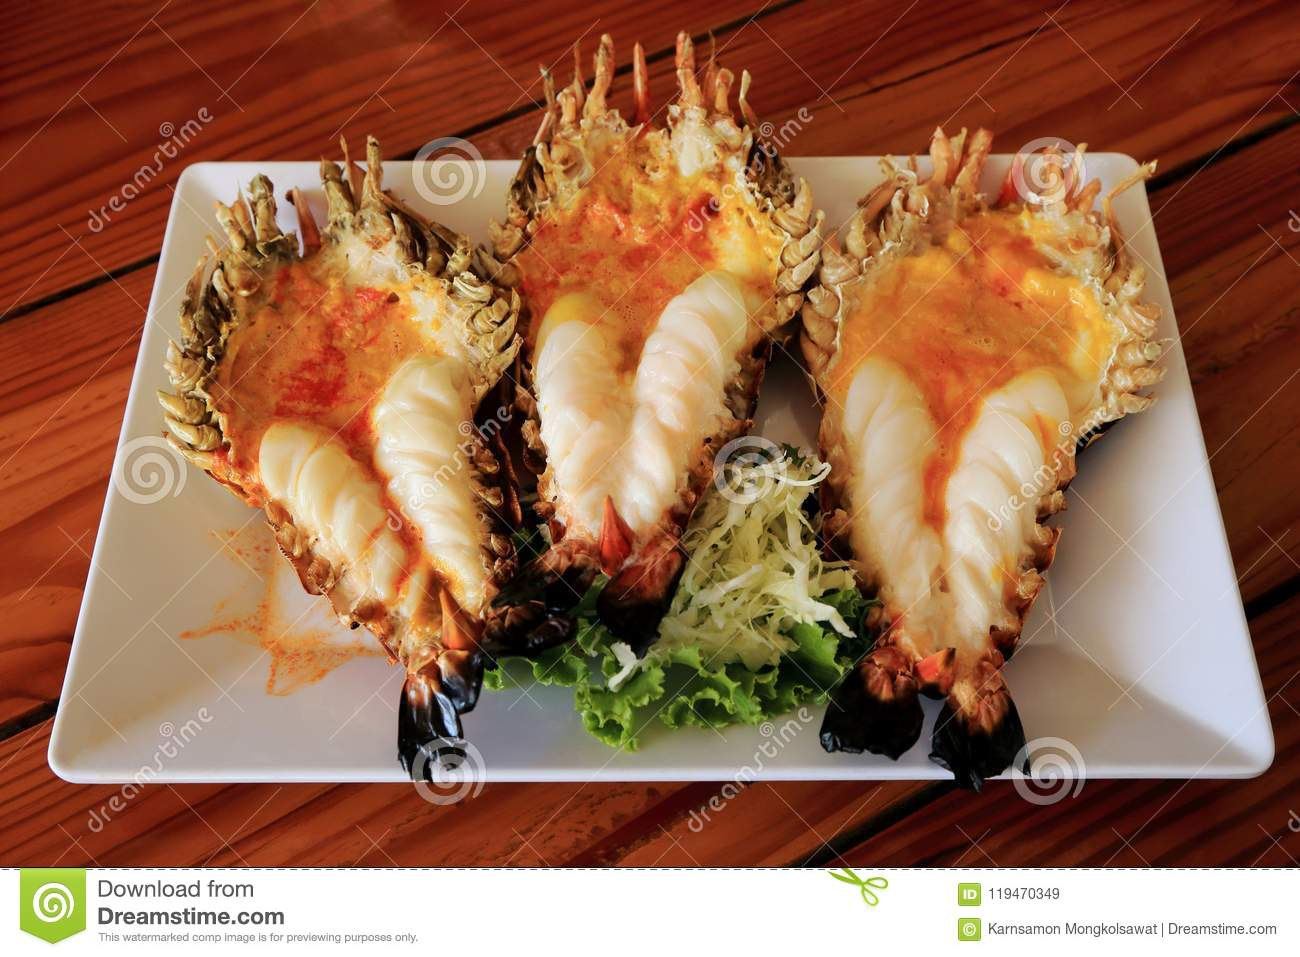 Roasted Grilled Giant River Shrimp Or Prawn On White Plate Thai